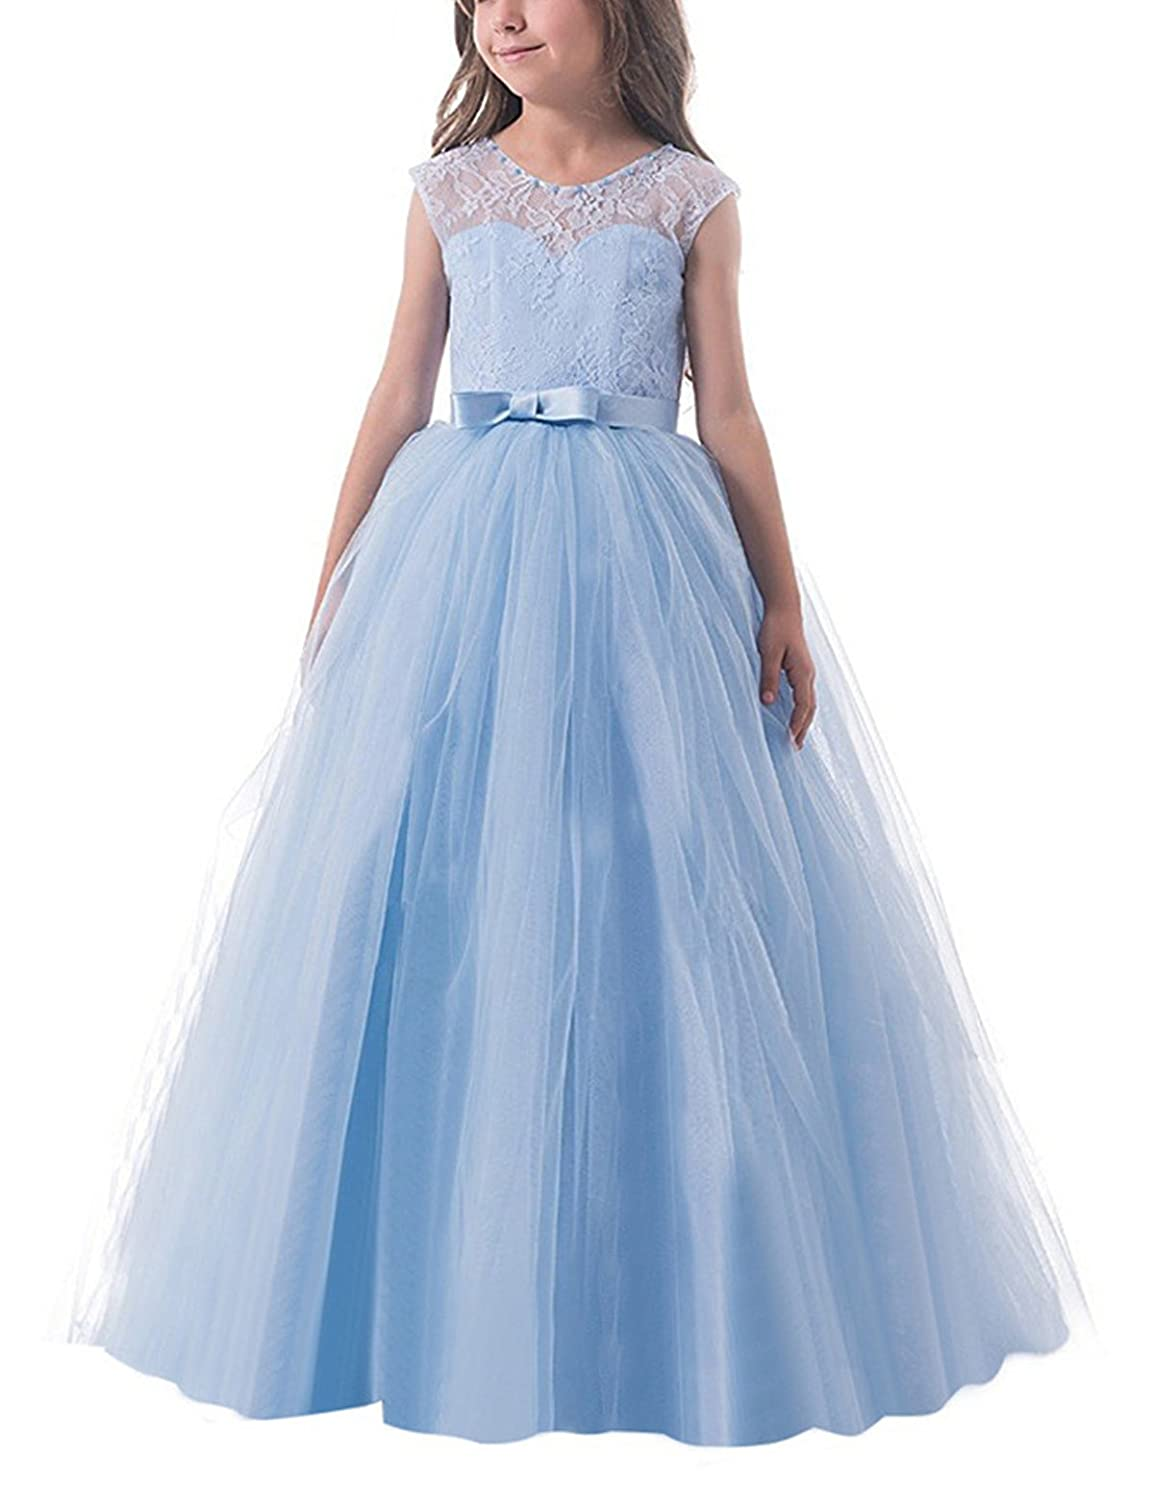 ac609992e1 Amazon.com: TTYAOVO Girls Pageant Ball Gowns Kids Chiffon Embroidered  Wedding Party Dress: Clothing